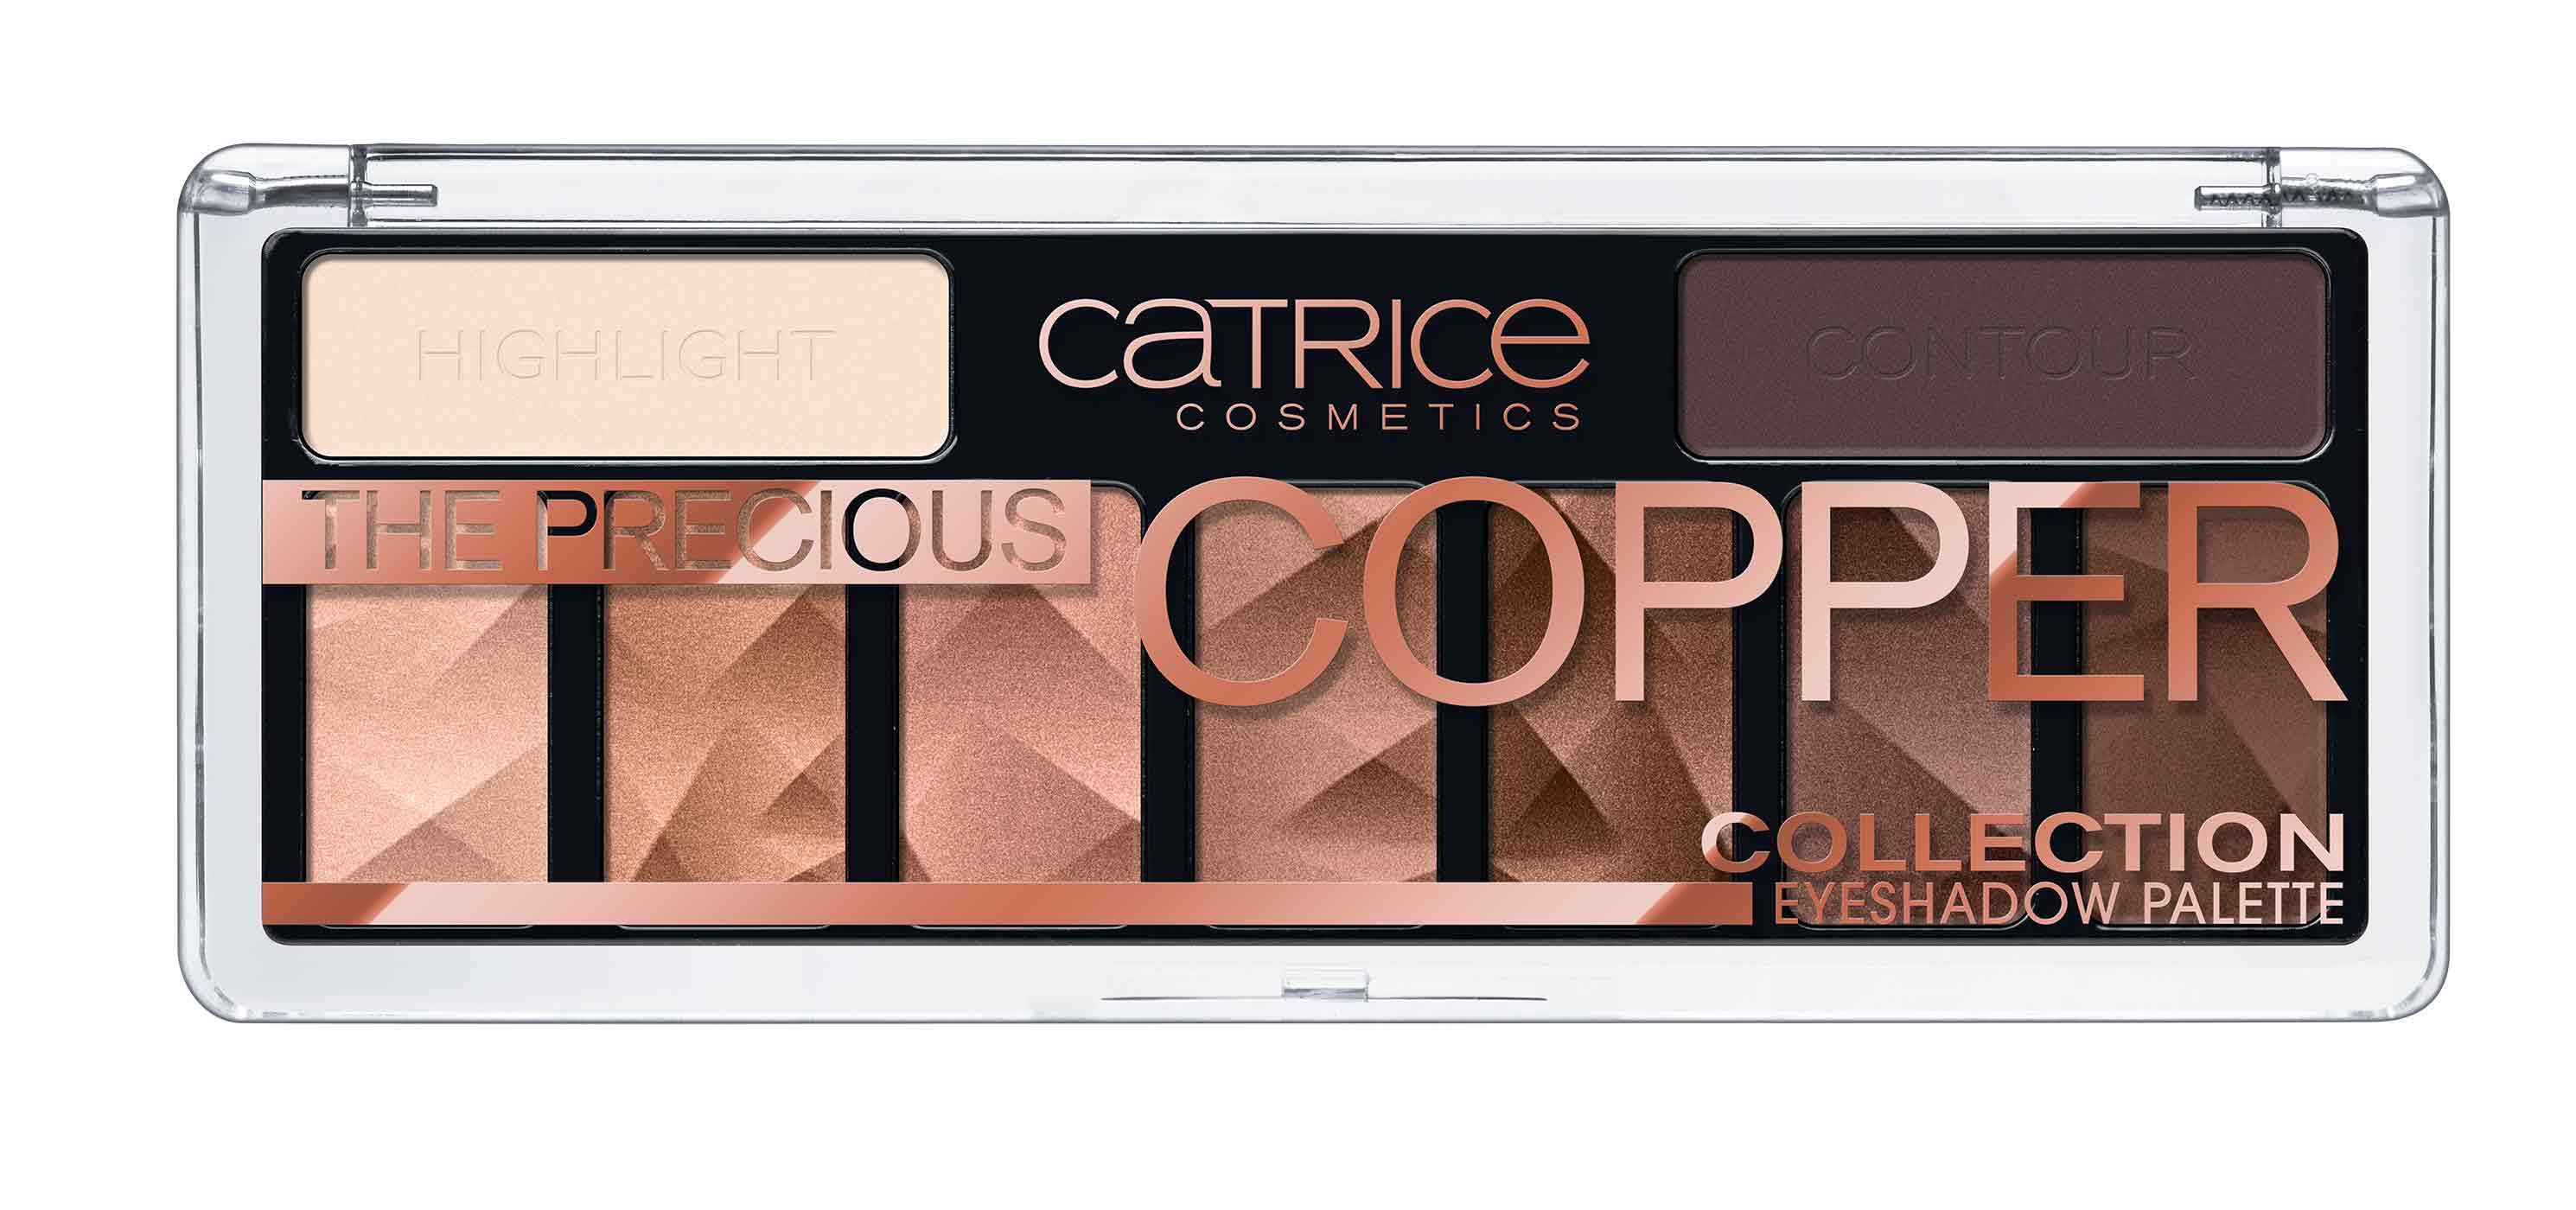 catr_the-collection_eyeshadow-palette_precious-copper_1477665990